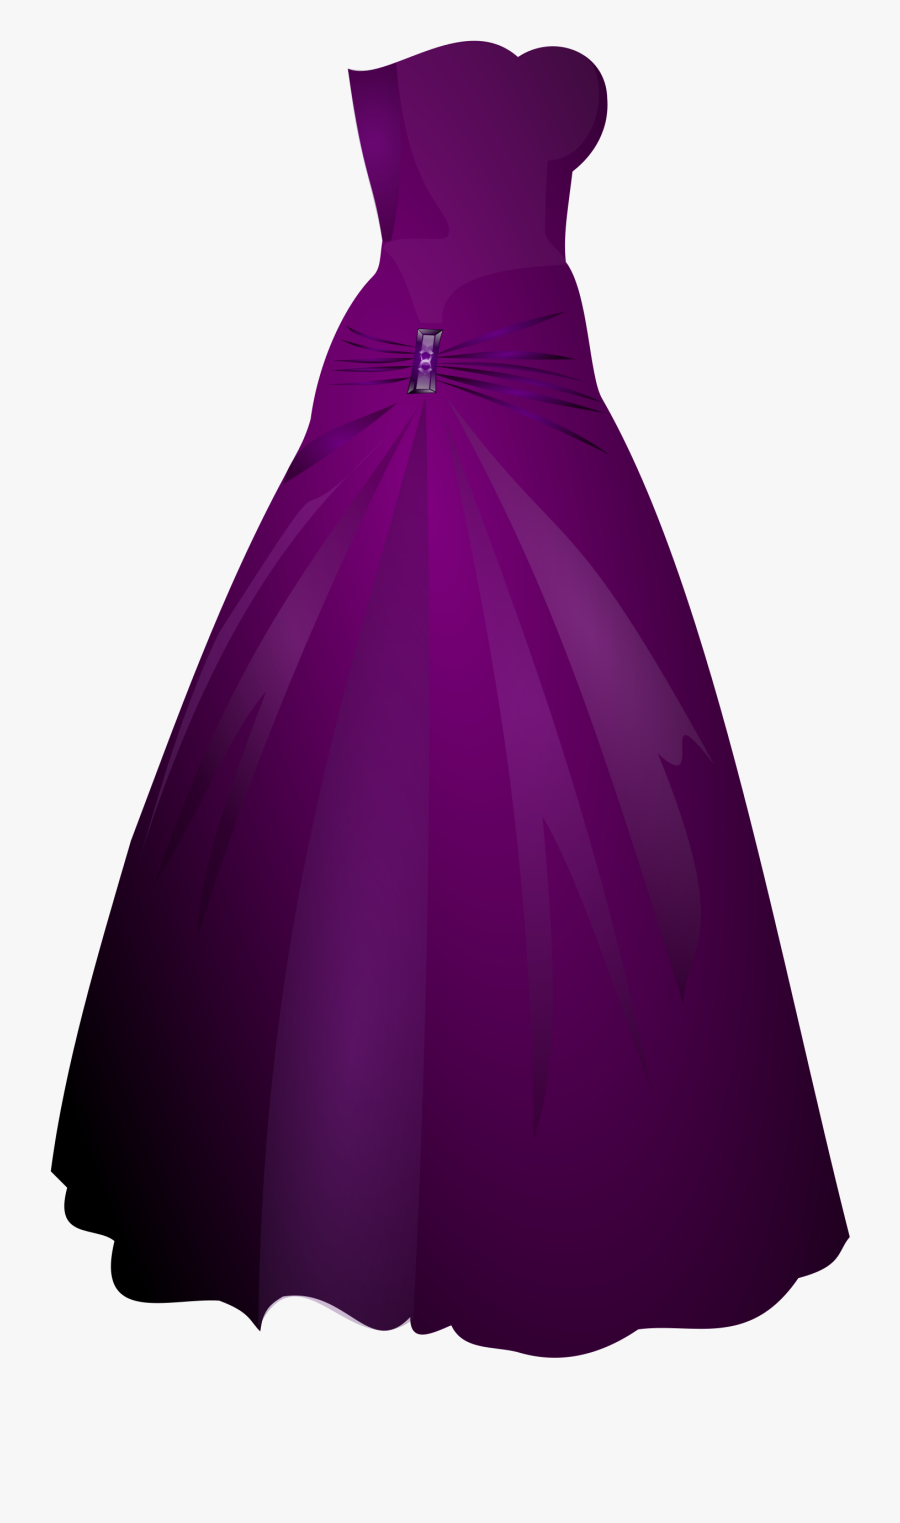 Nightgown - Clipart - Prom Dress White Background, Transparent Clipart